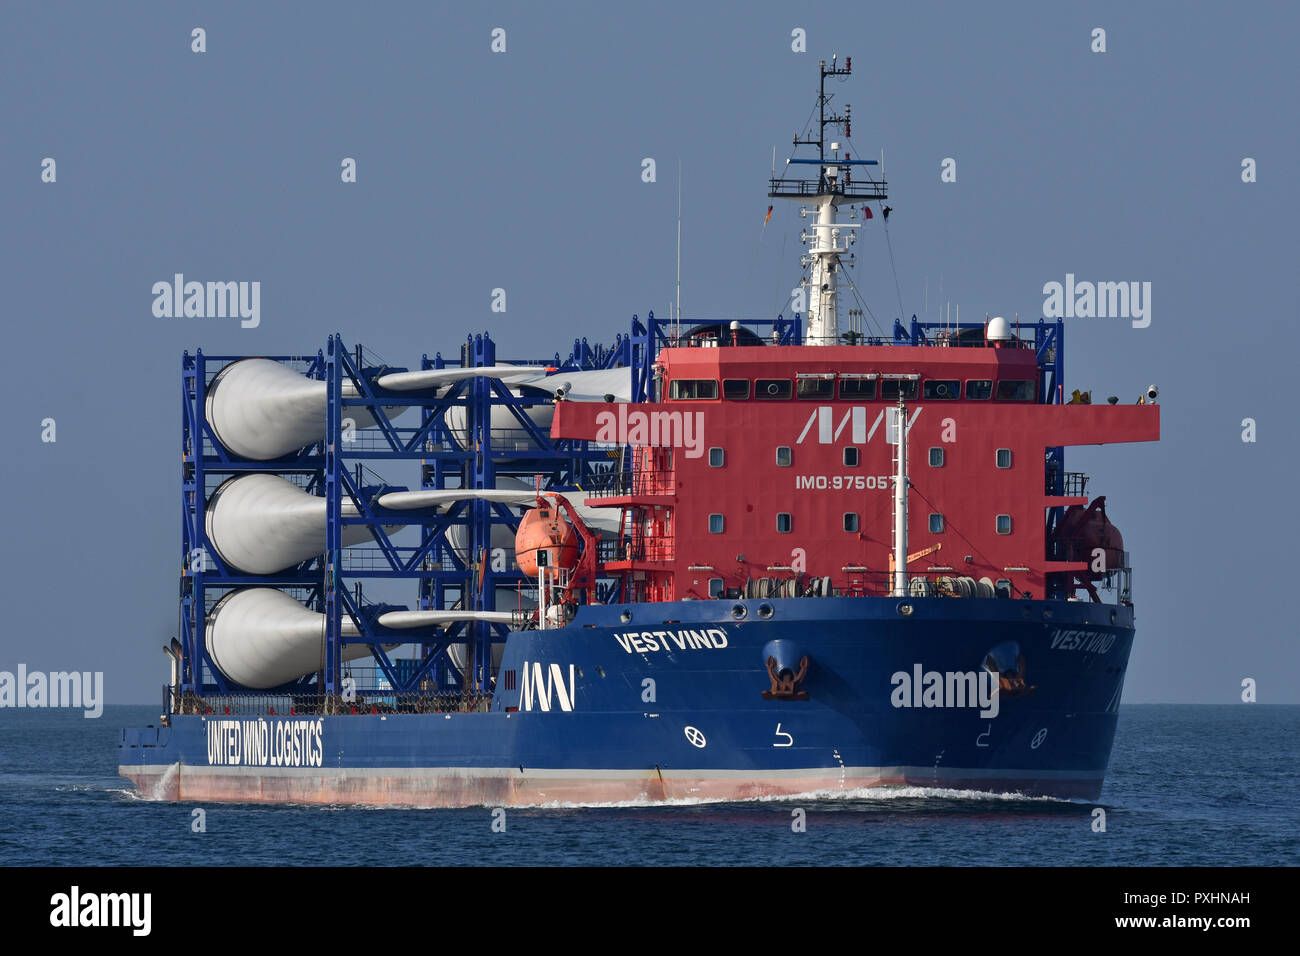 Deck cargo ship VestvindStock Photo